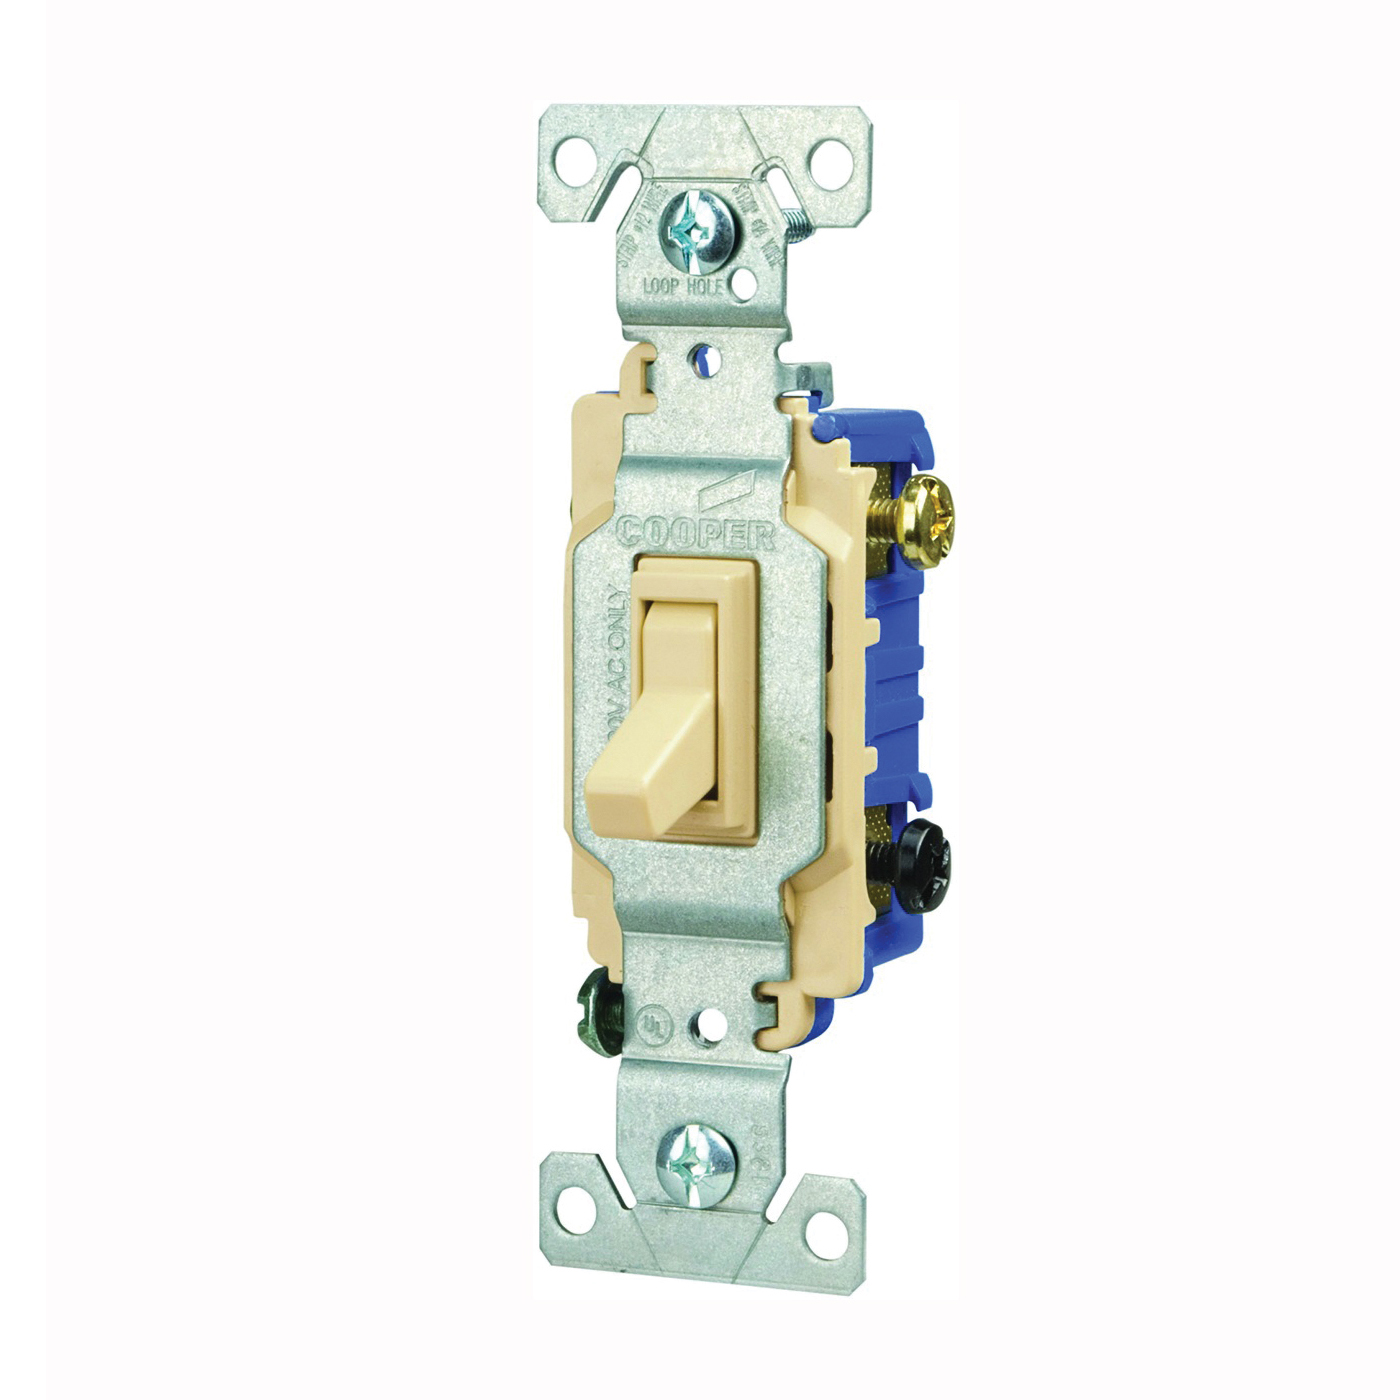 Picture of Eaton Wiring Devices C1303-7LTV-L Toggle Switch, 15 A, 120 V, Polycarbonate Housing Material, Ivory